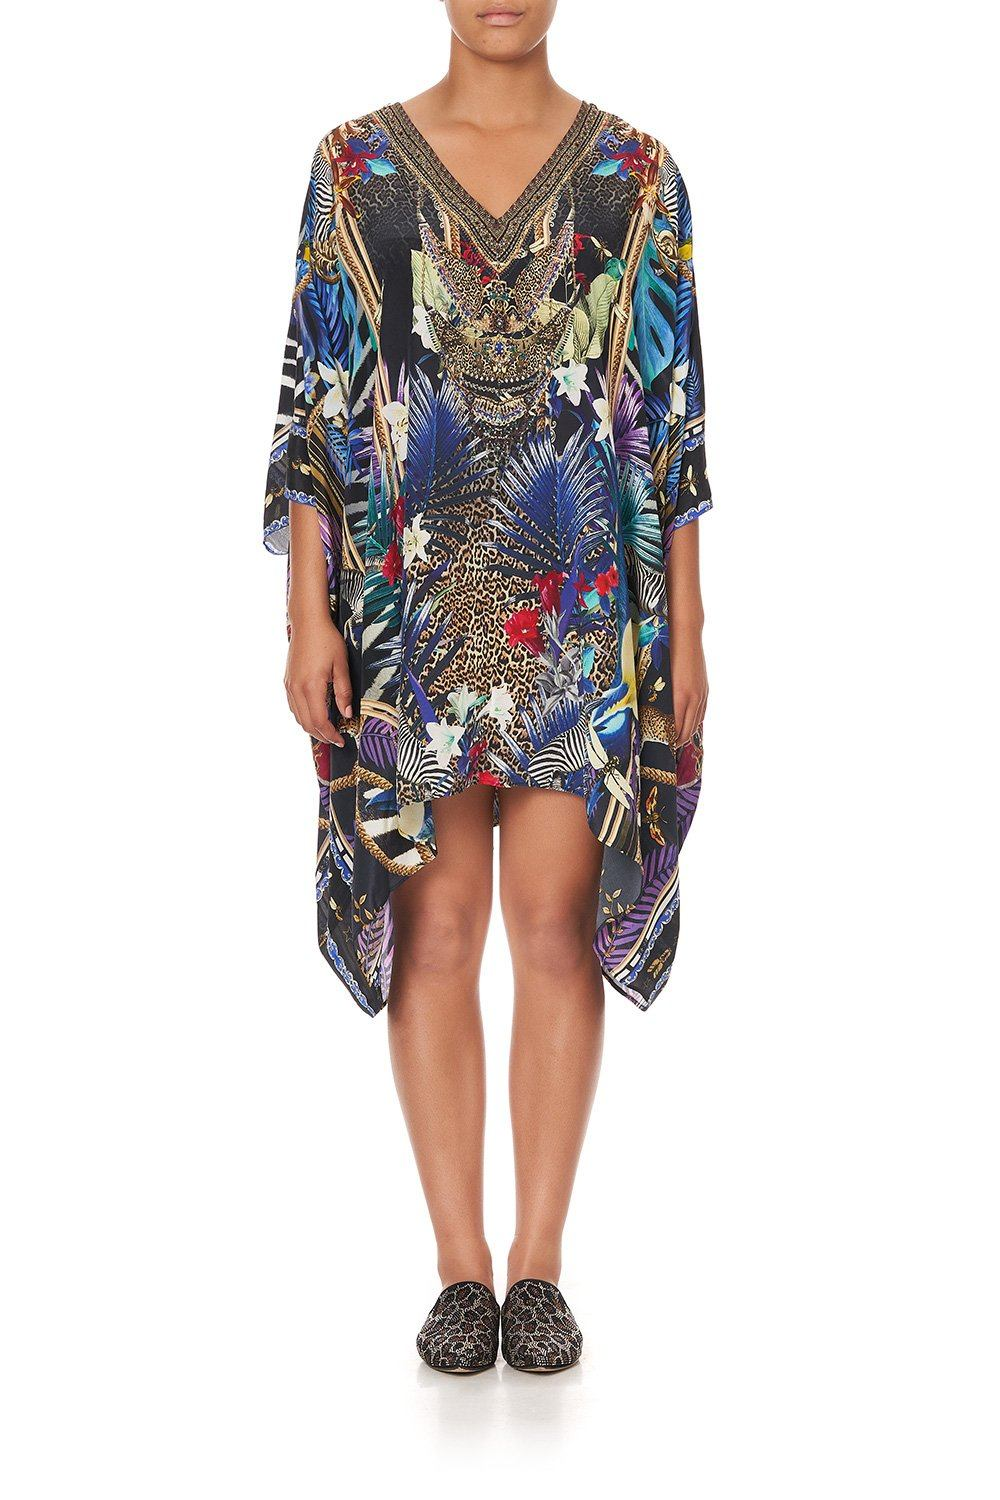 Rainbow Room Kaftan with Button Up Sleeves KAFTAN CAMILLA